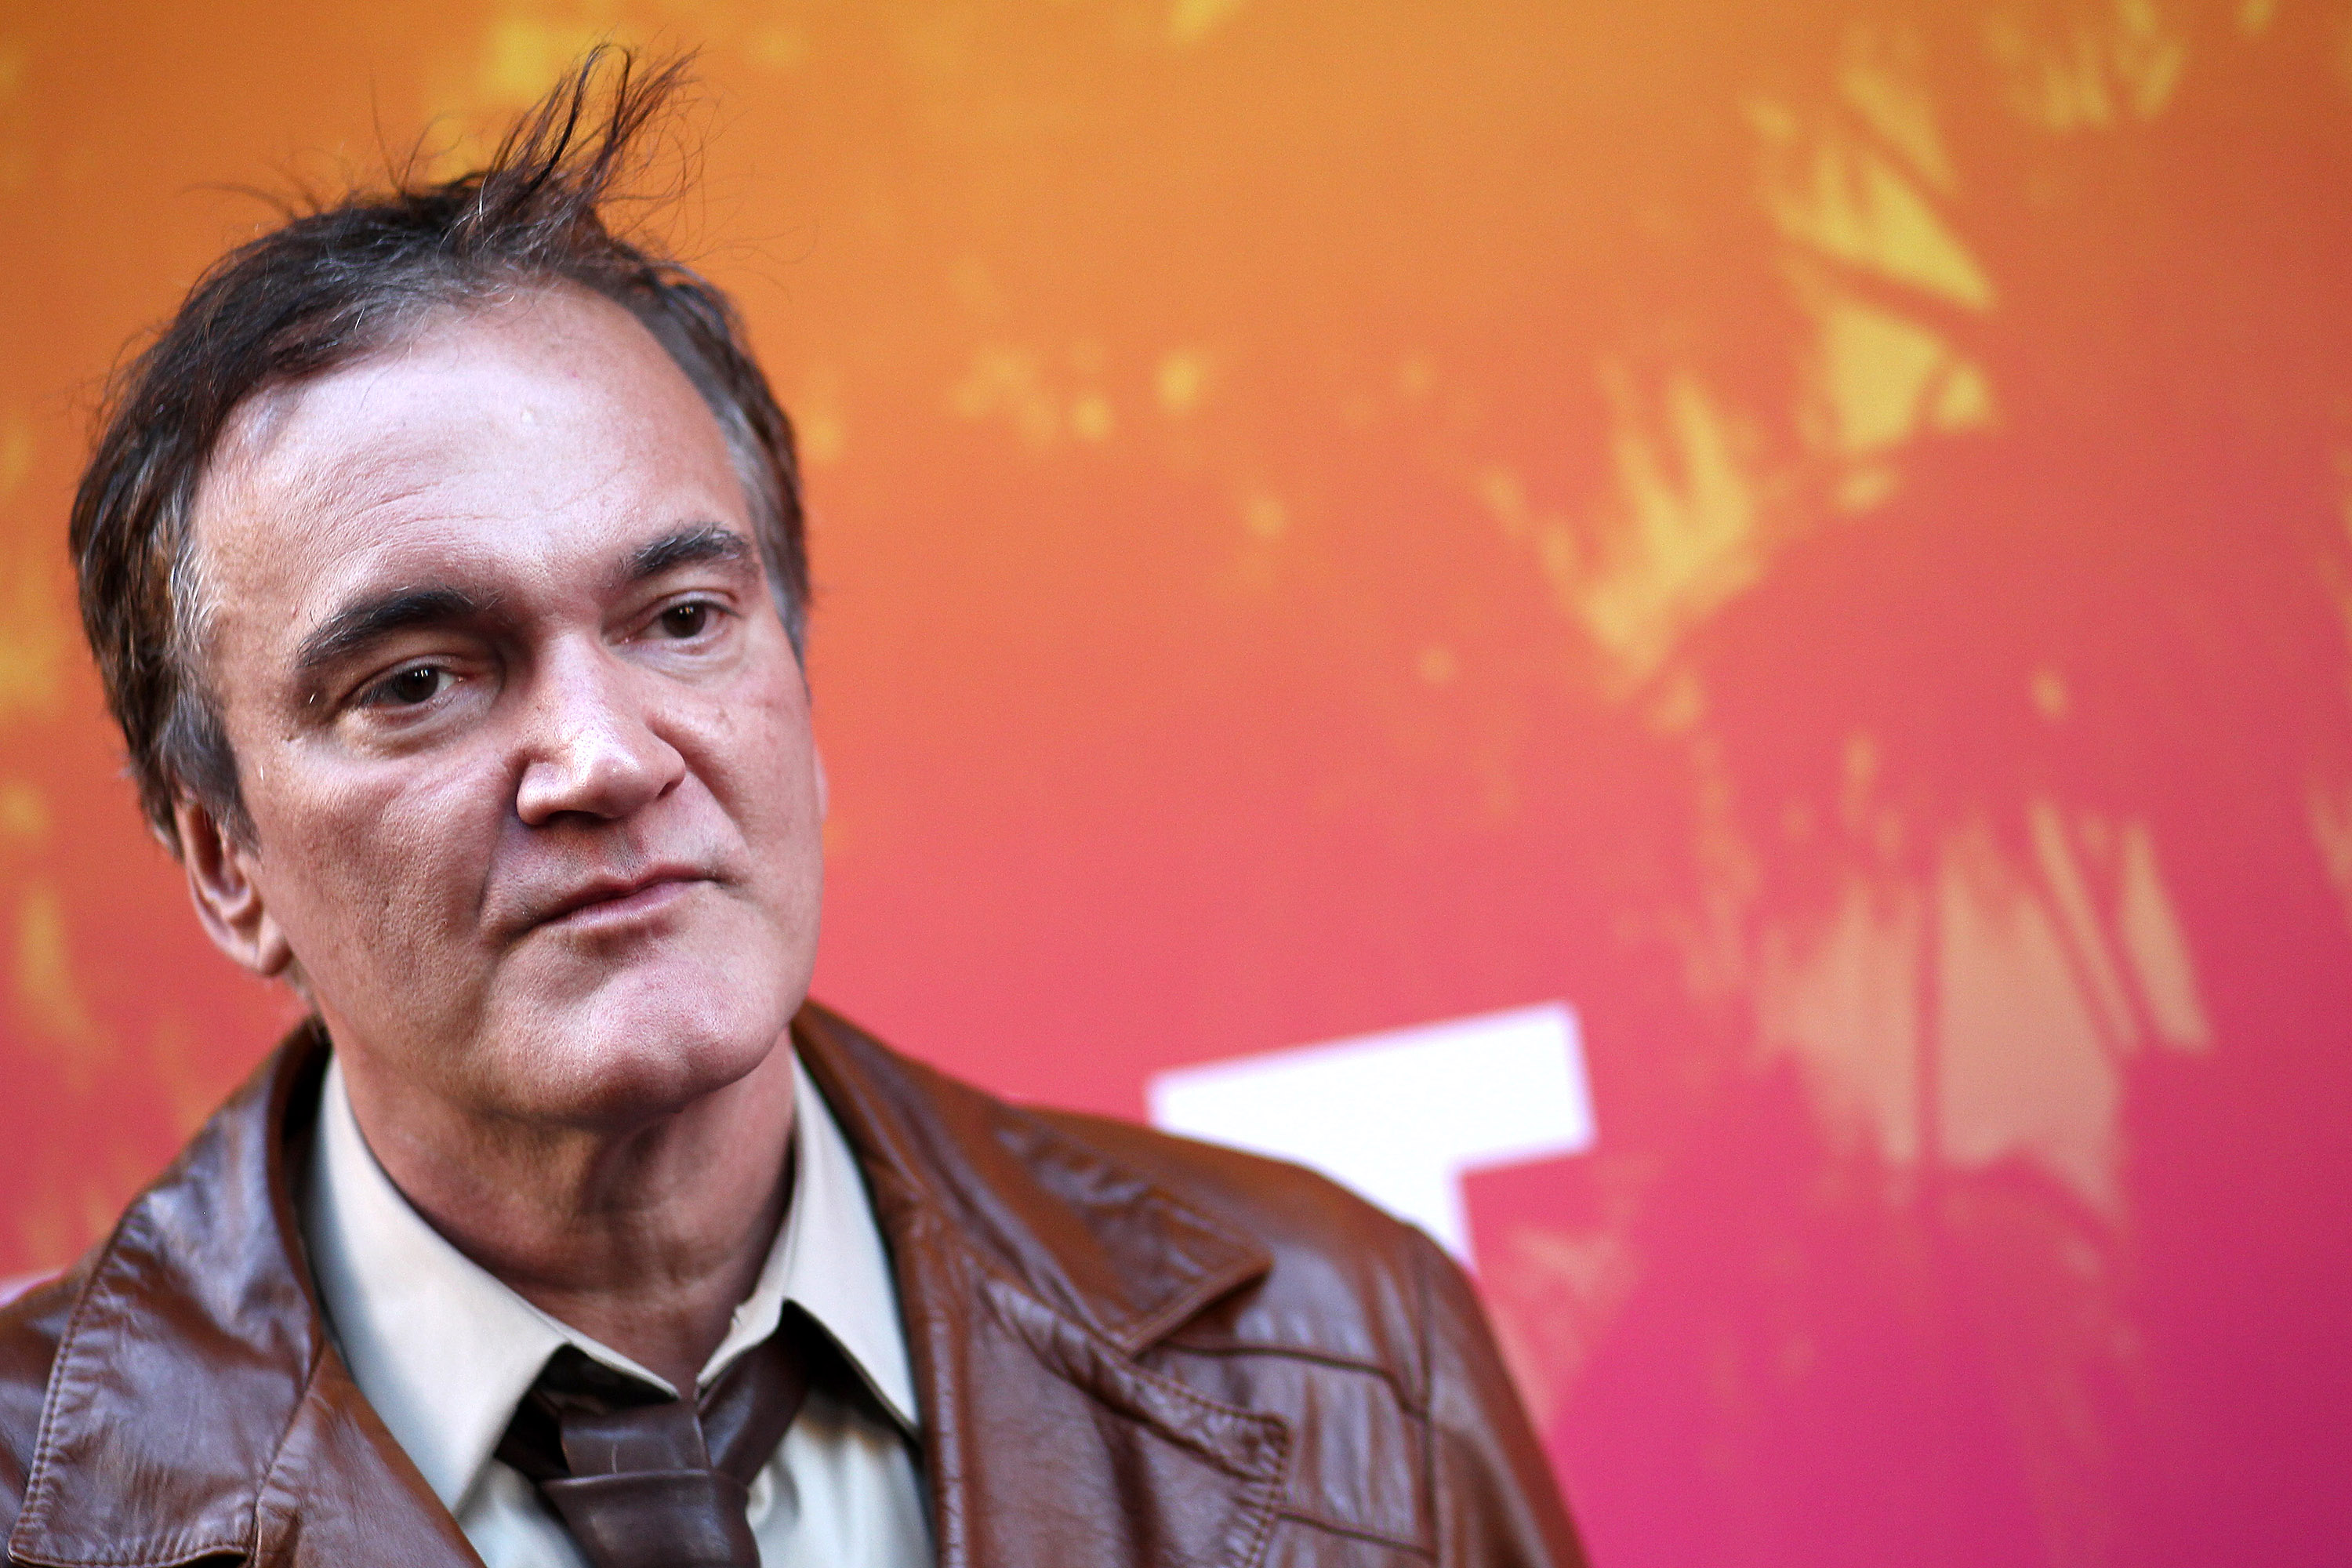 Quentin Tarantino at the Sundance NEXT FEST in Los Angeles, Calif. on Aug. 10, 2017.